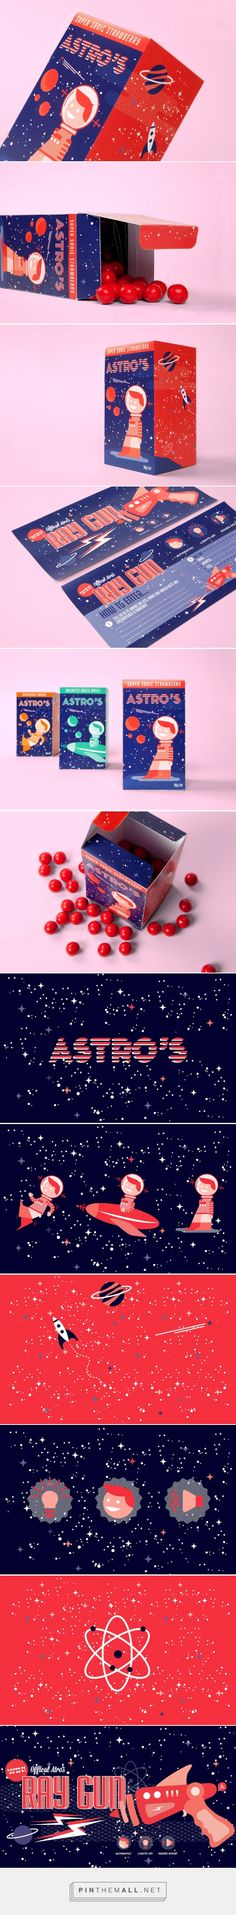 Astro's #Student #packaging by Nathan Nankervis - http://www.packagingoftheworld.com/2015/02/astros-student-project.html